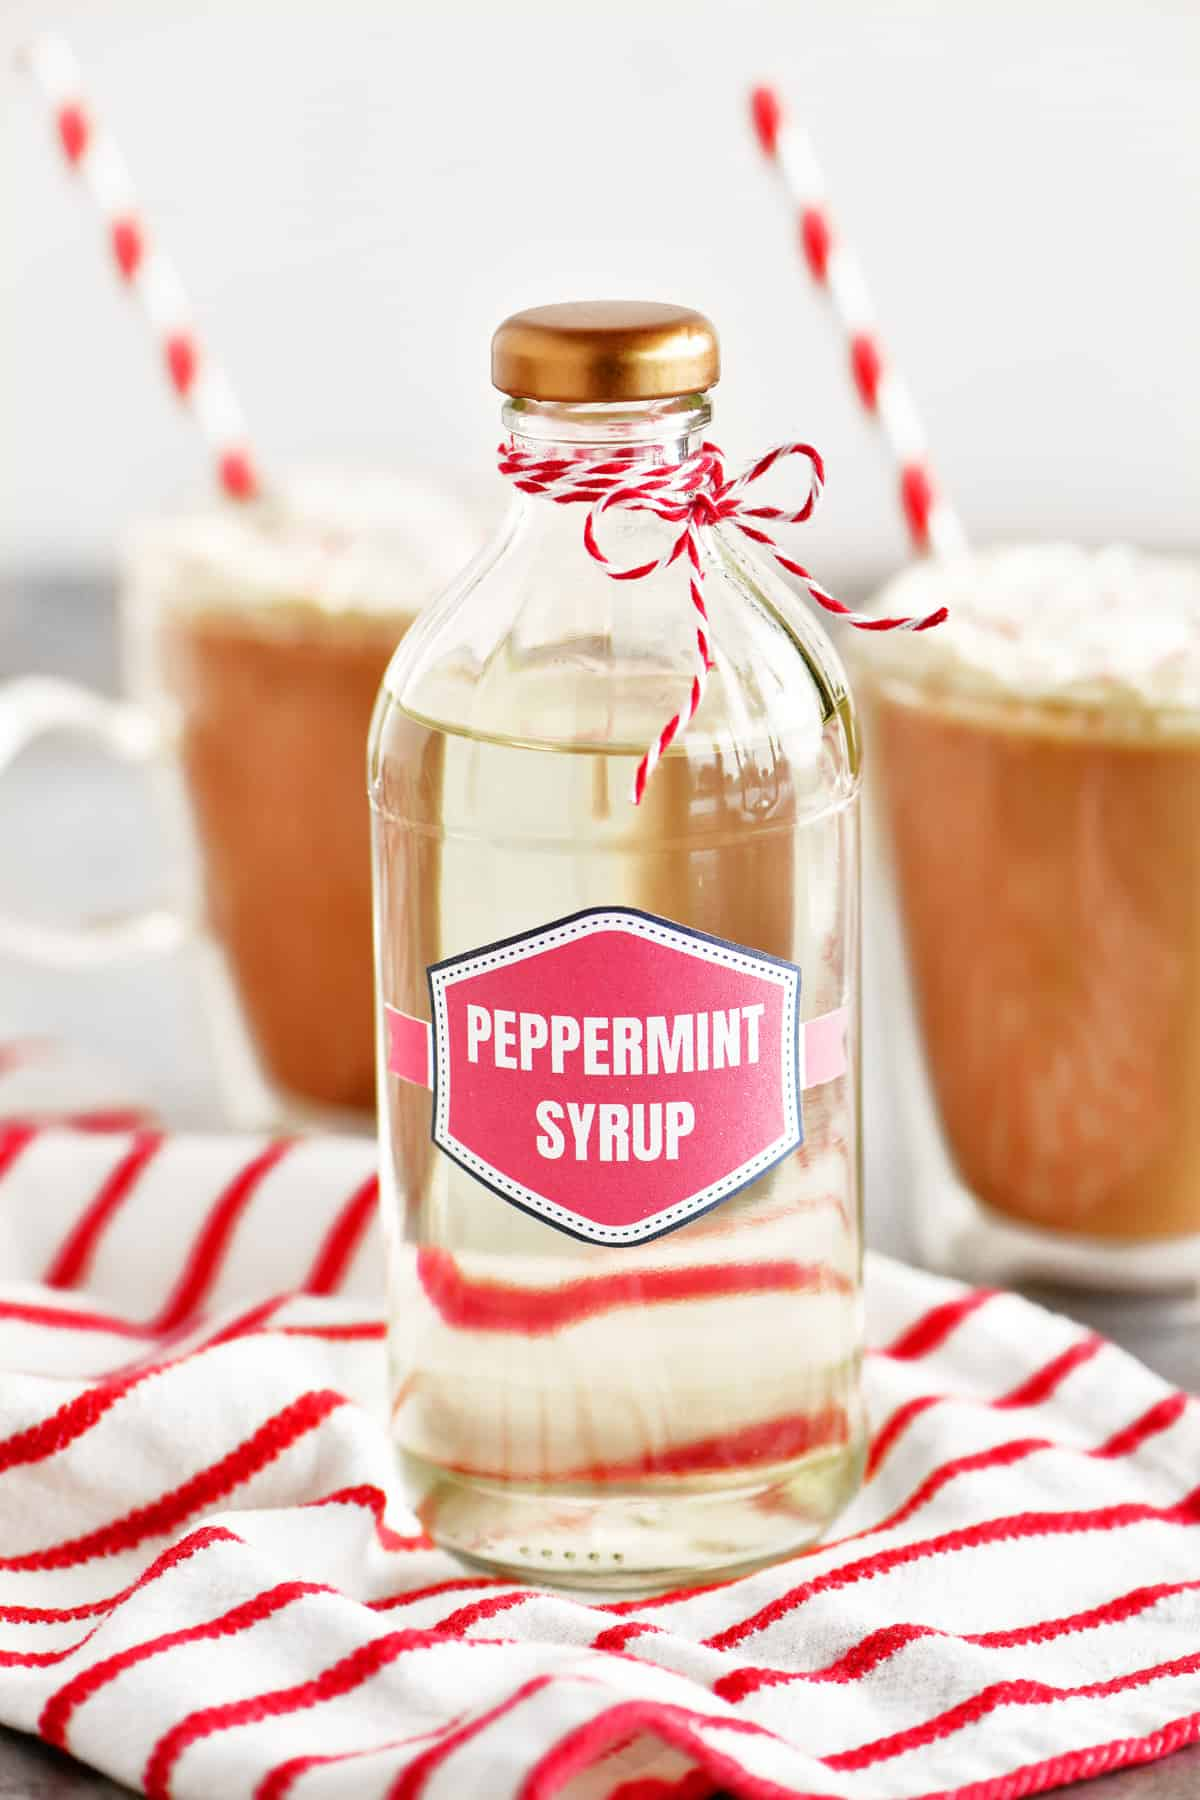 a photo of a bottle of peppermint coffee syrup with some mocha drinks in the background